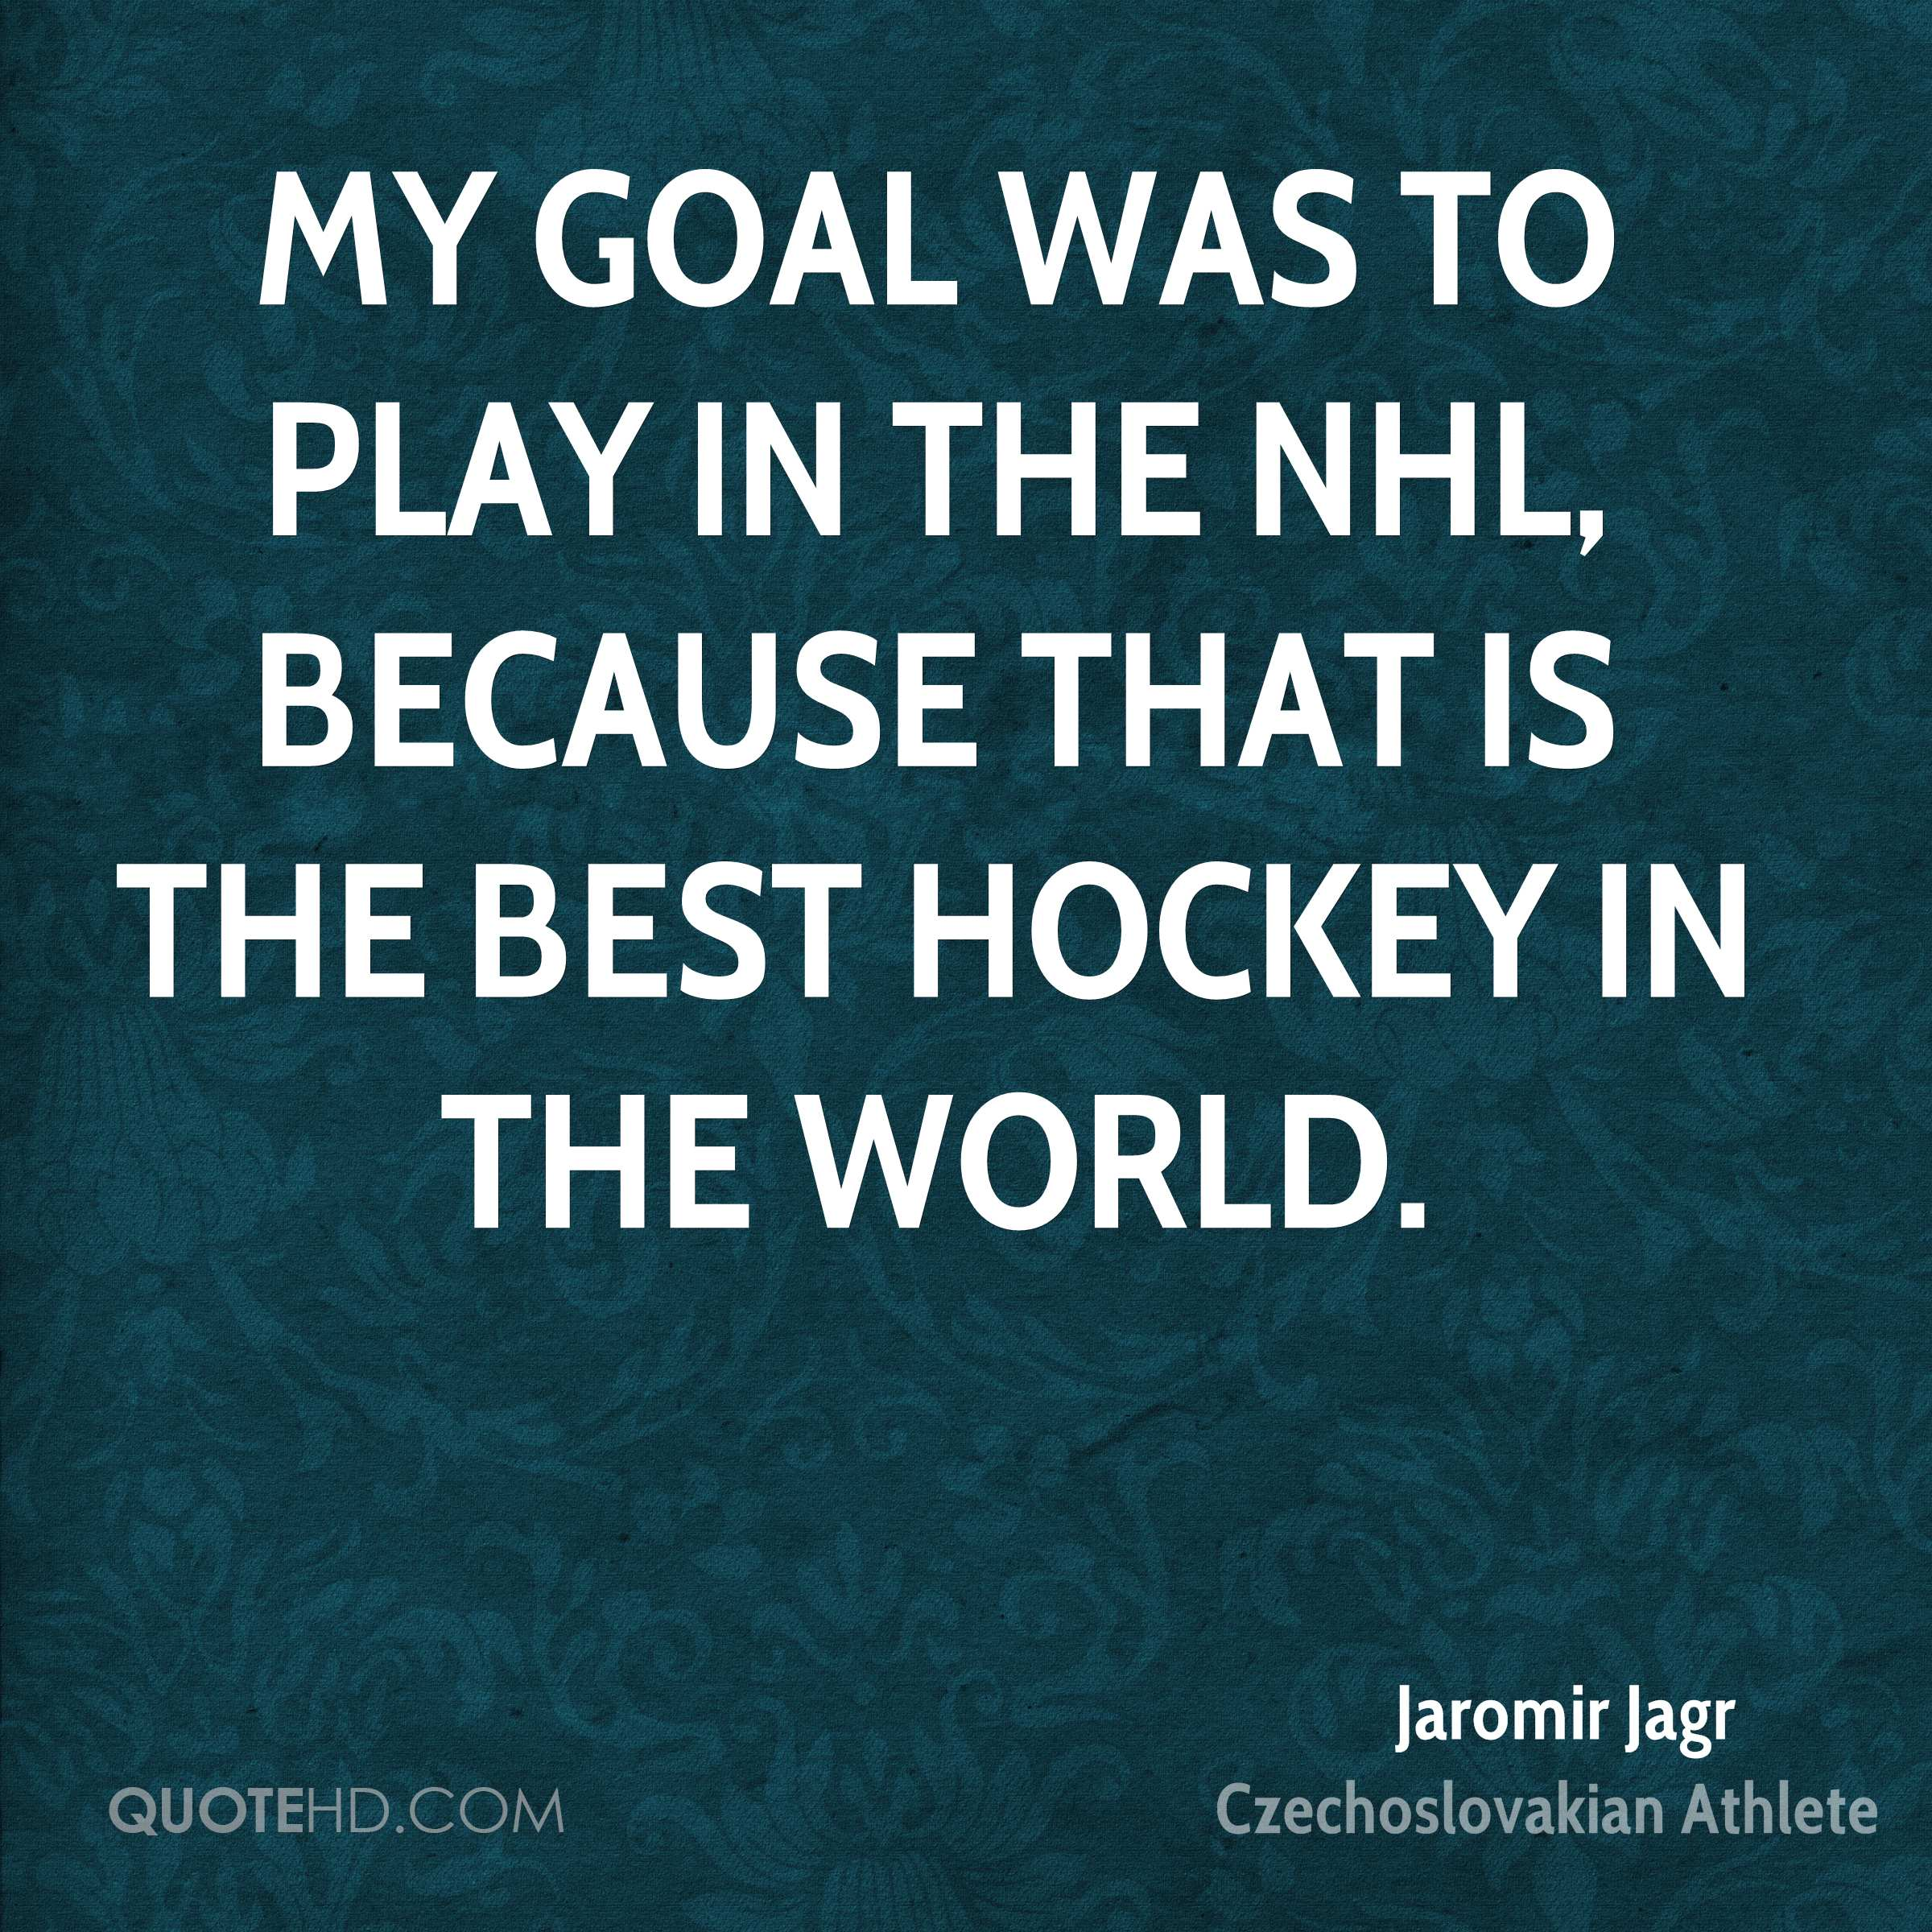 My goal was to play in the NHL, because that is the best hockey in the world.